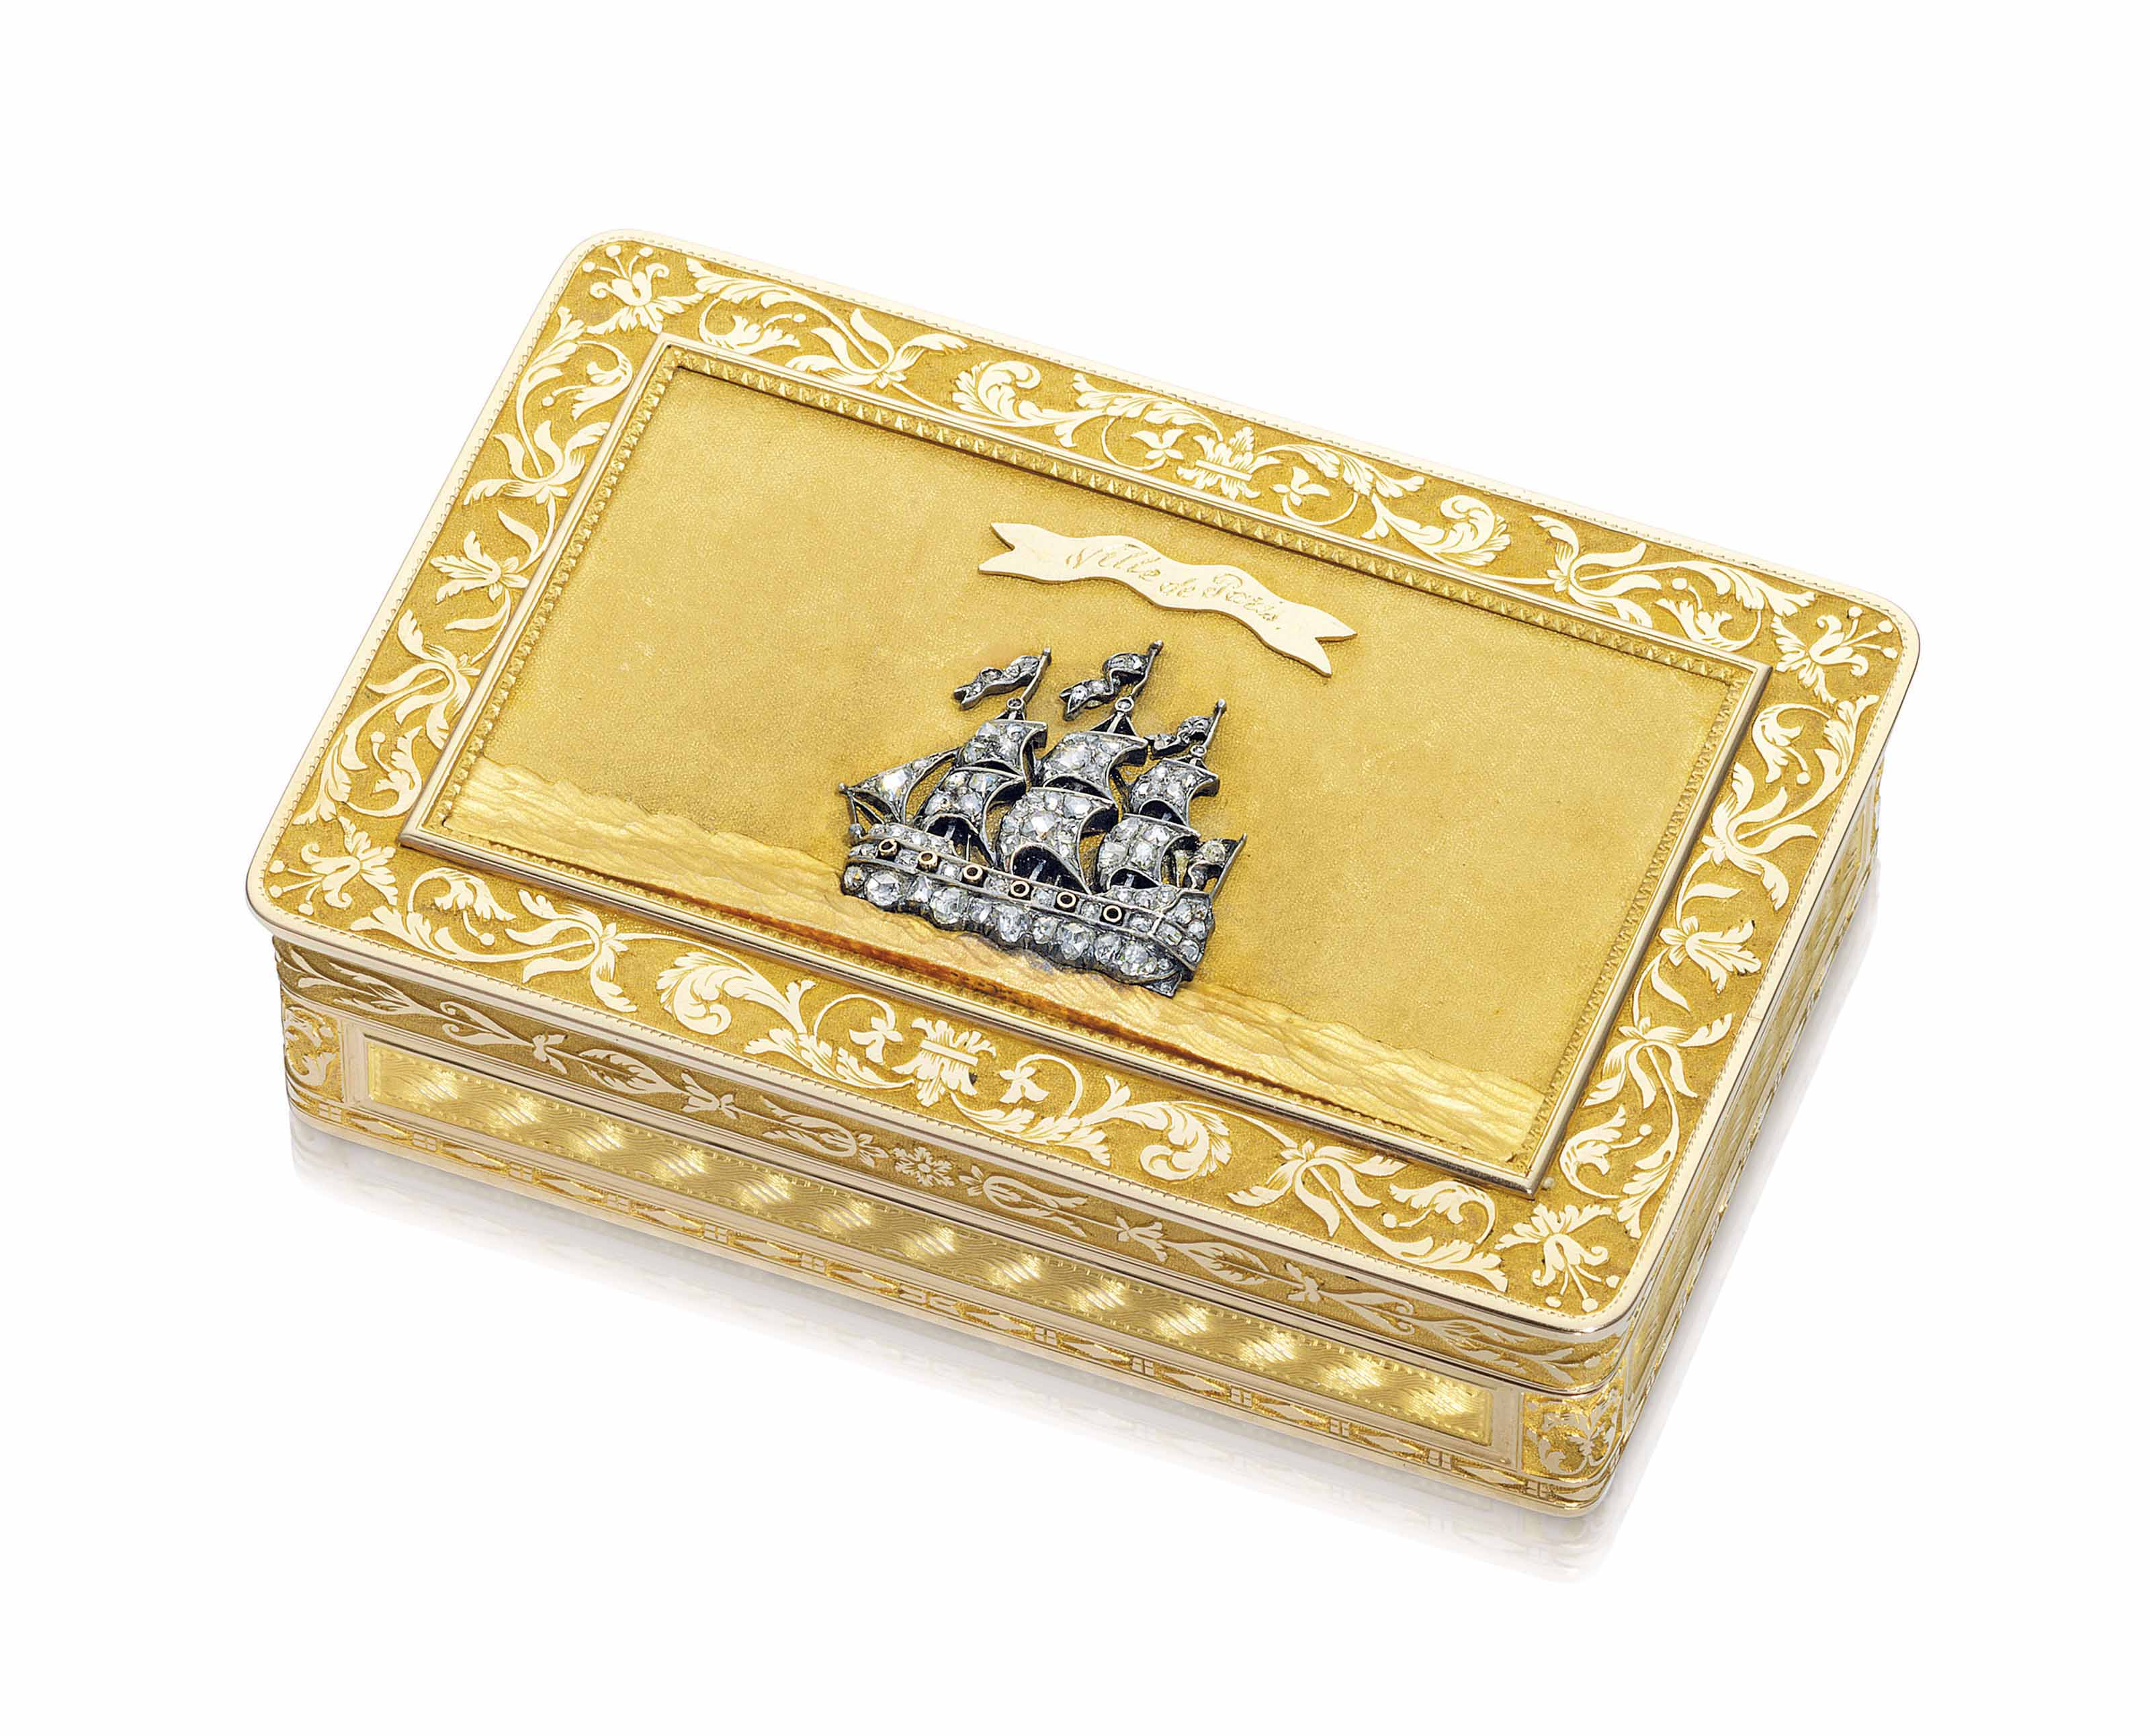 A FRENCH JEWELLED GOLD SNUFF-BOX